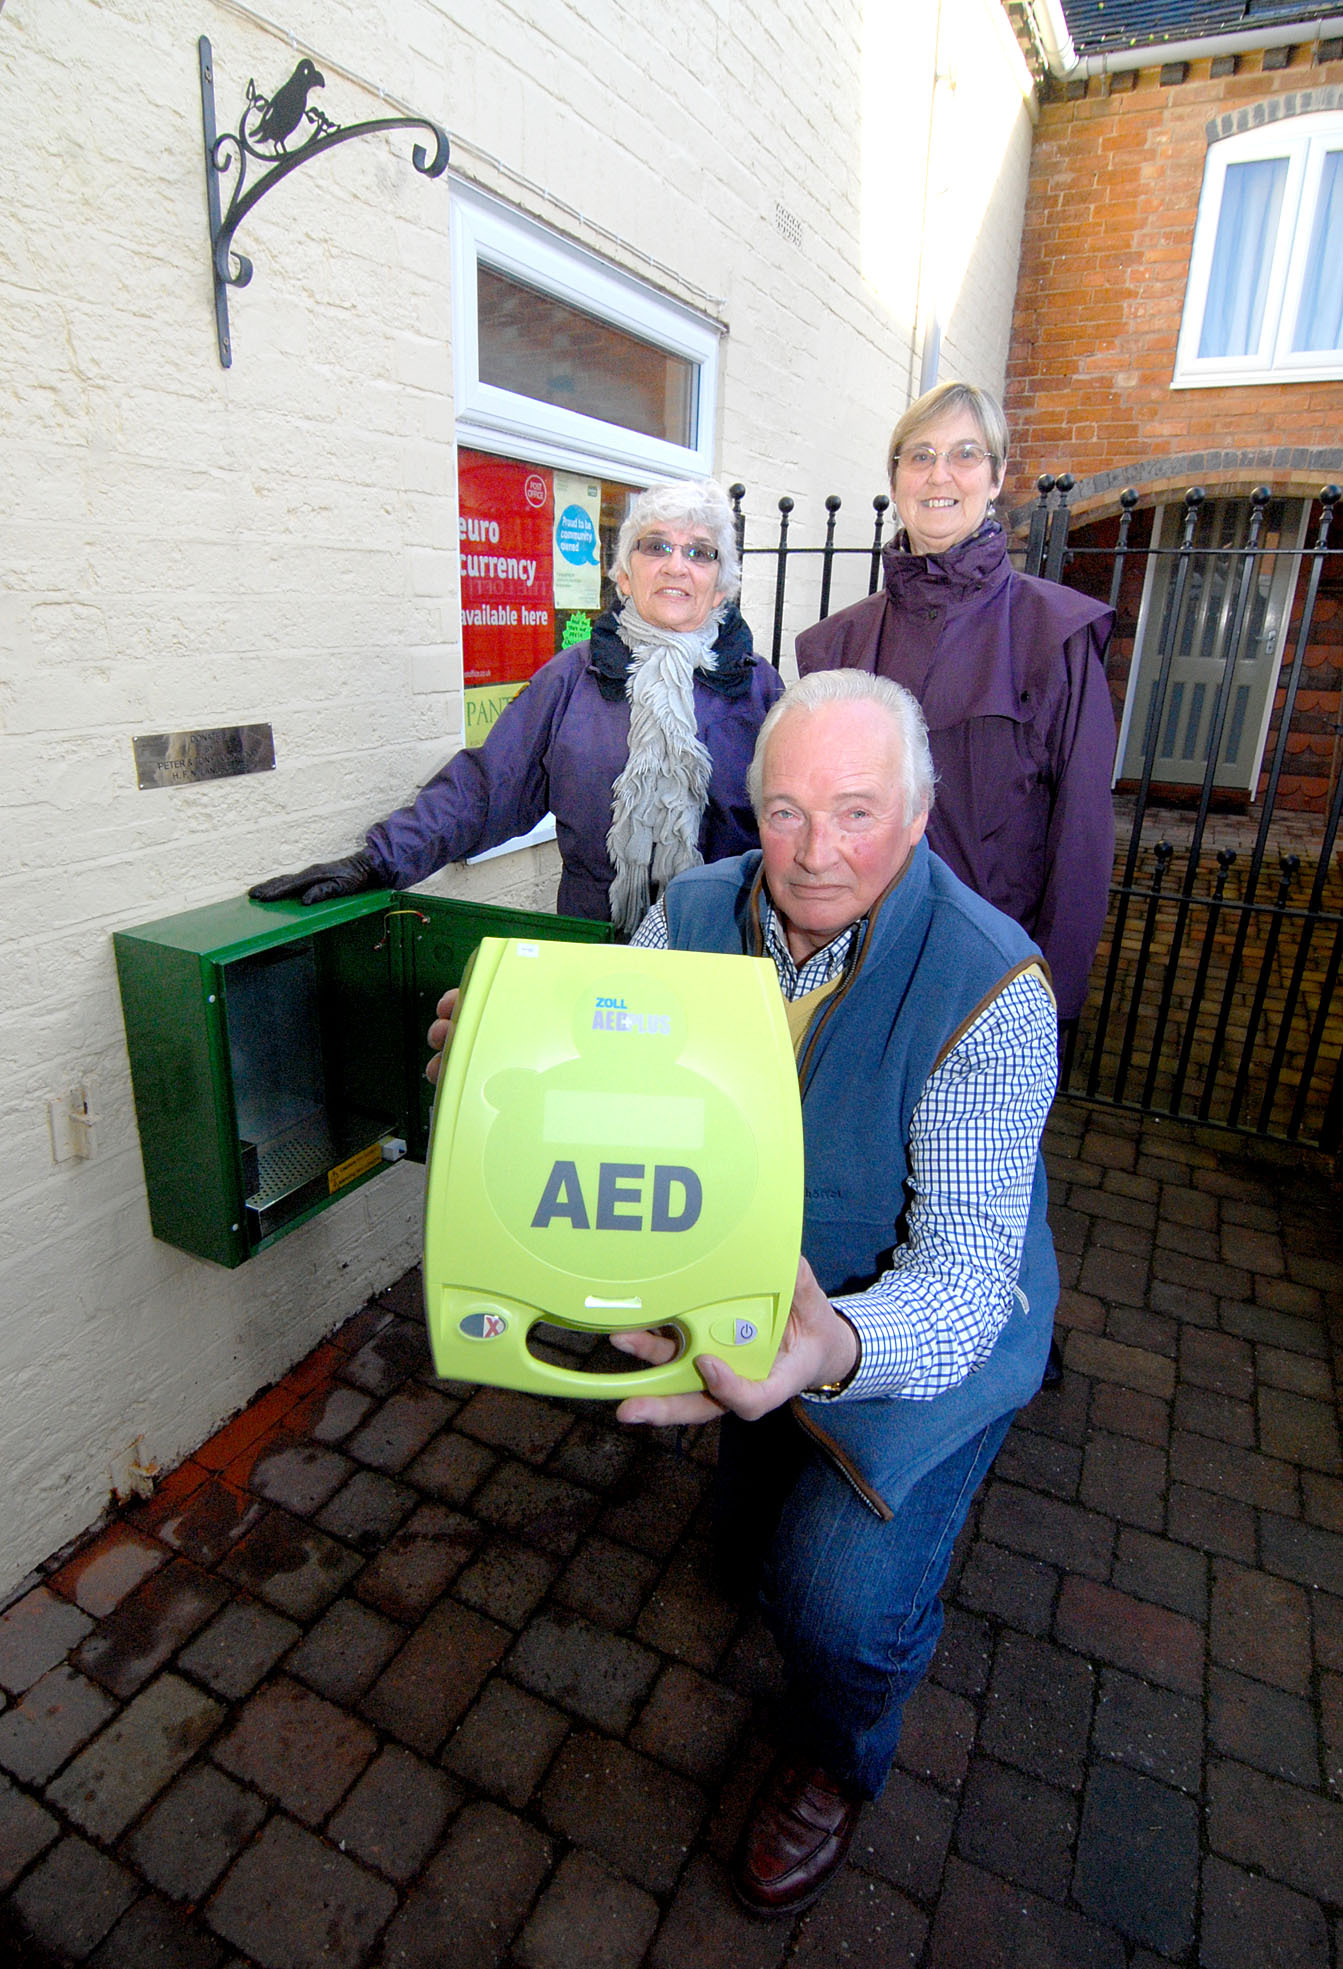 Village gets defibrillator